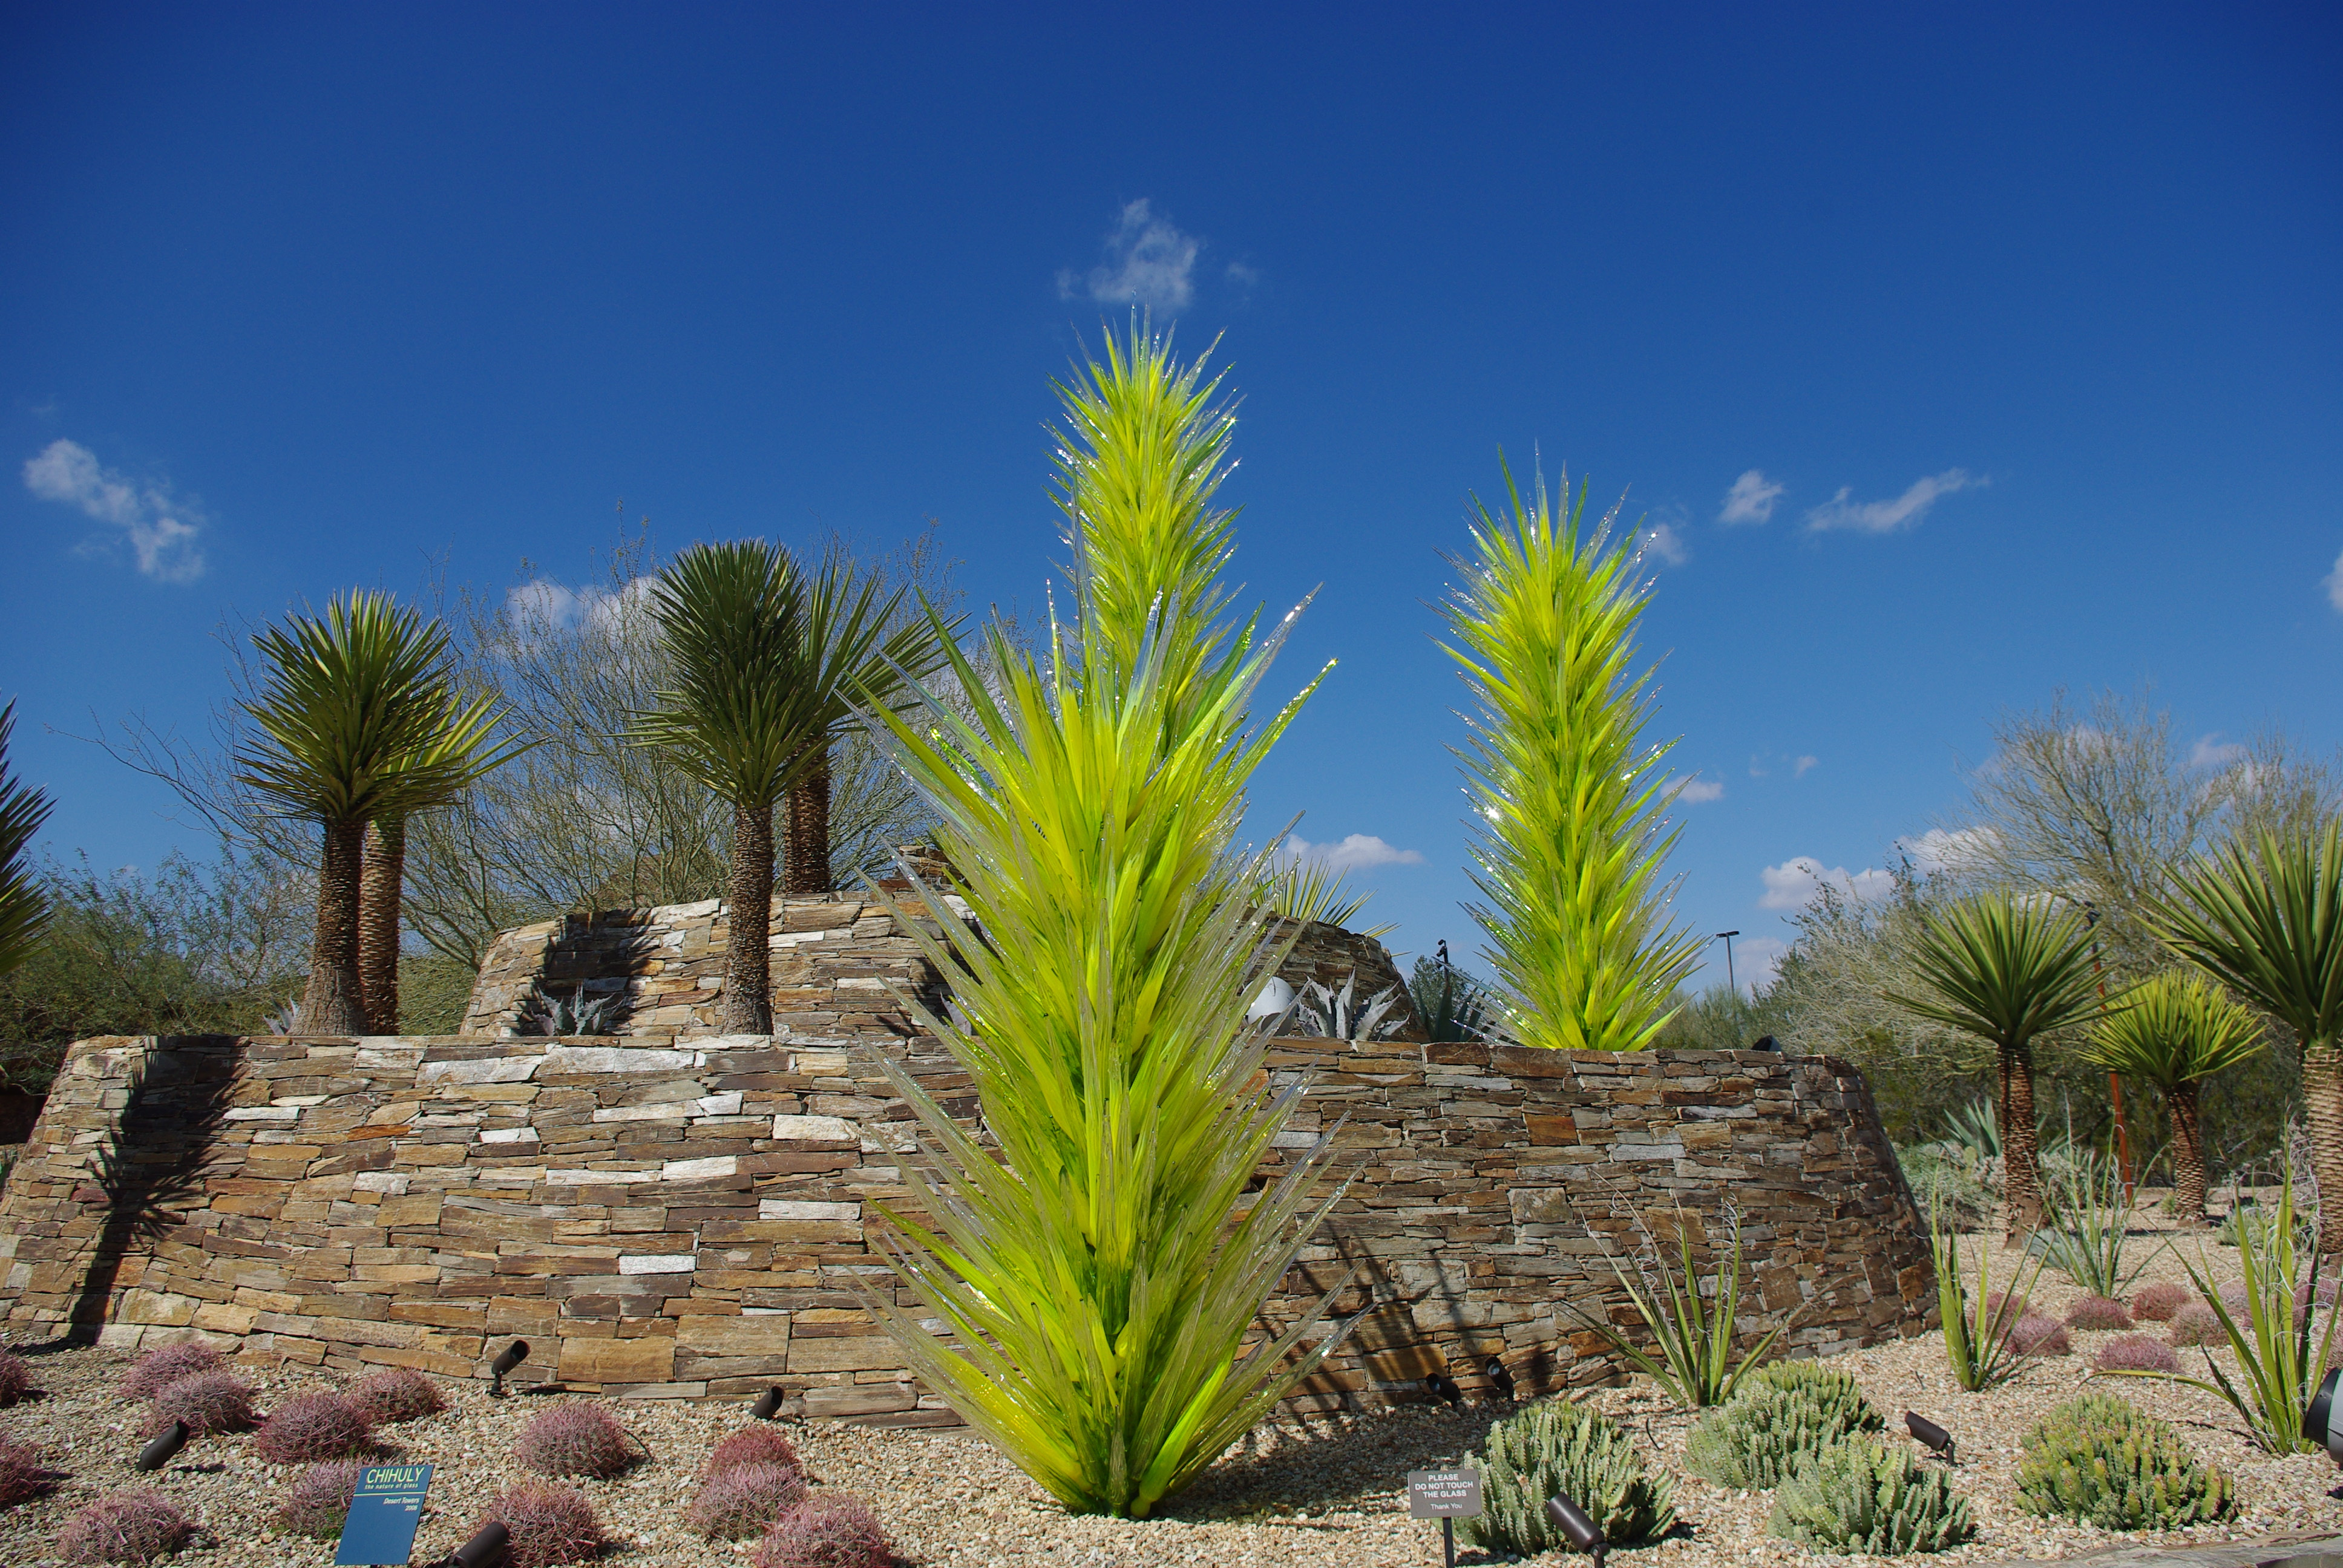 Chihuly Arizona Cool Above Dale Chihuly Red Reeds Desert Botanical Garden Phoenix Arizona With